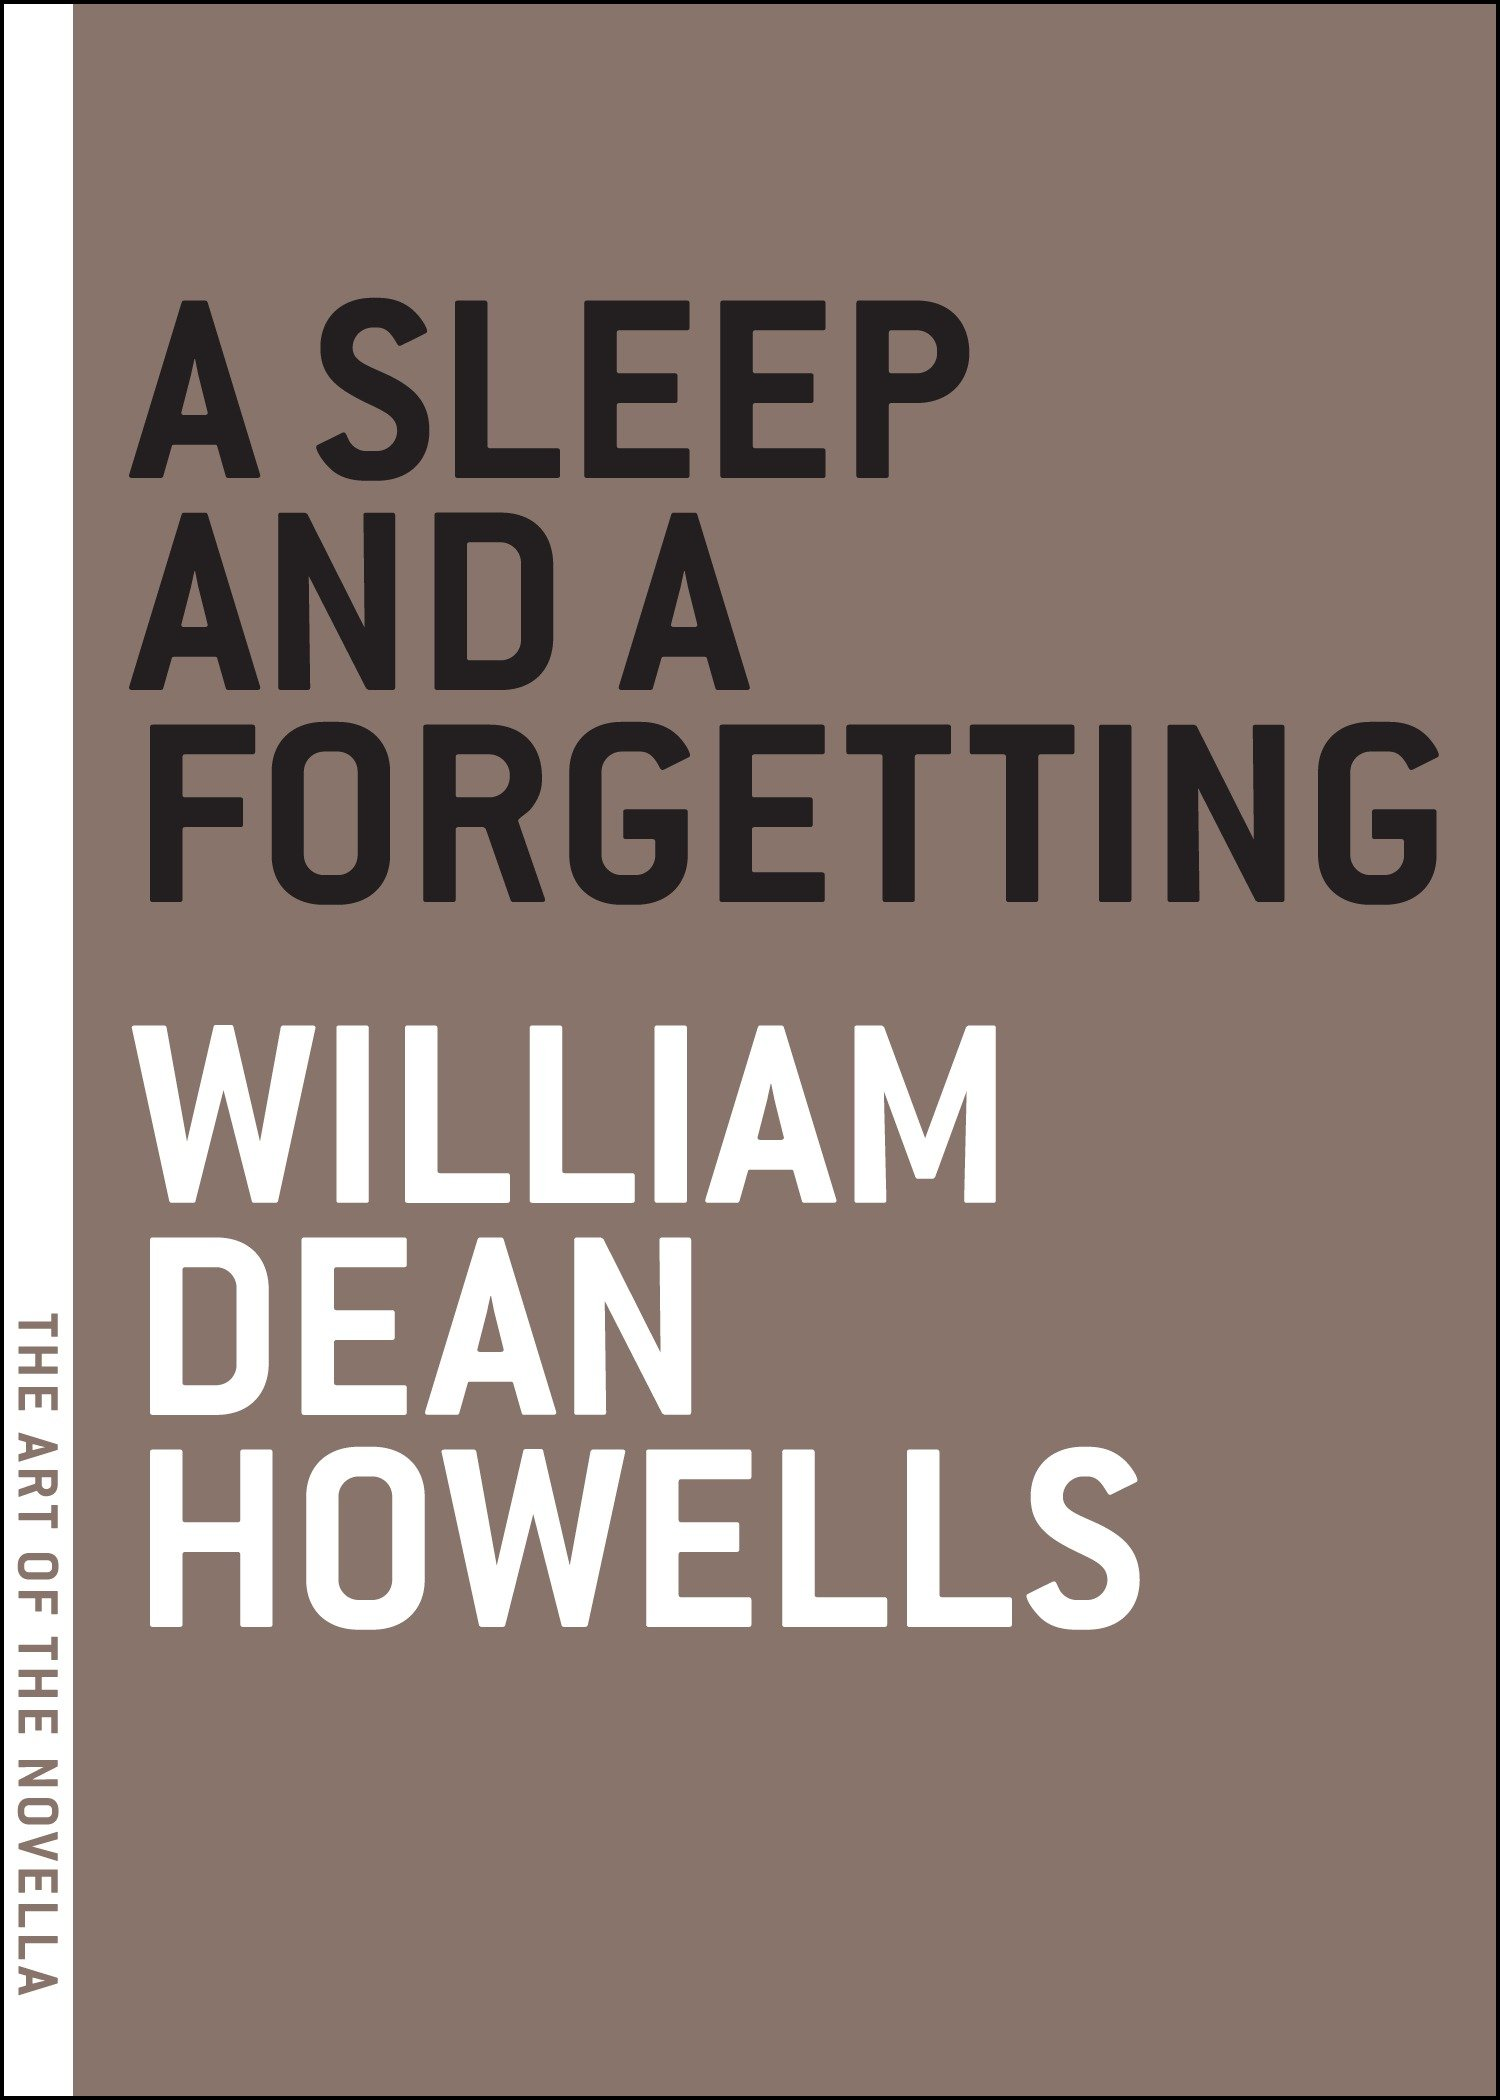 A Sleep and a Forgetting